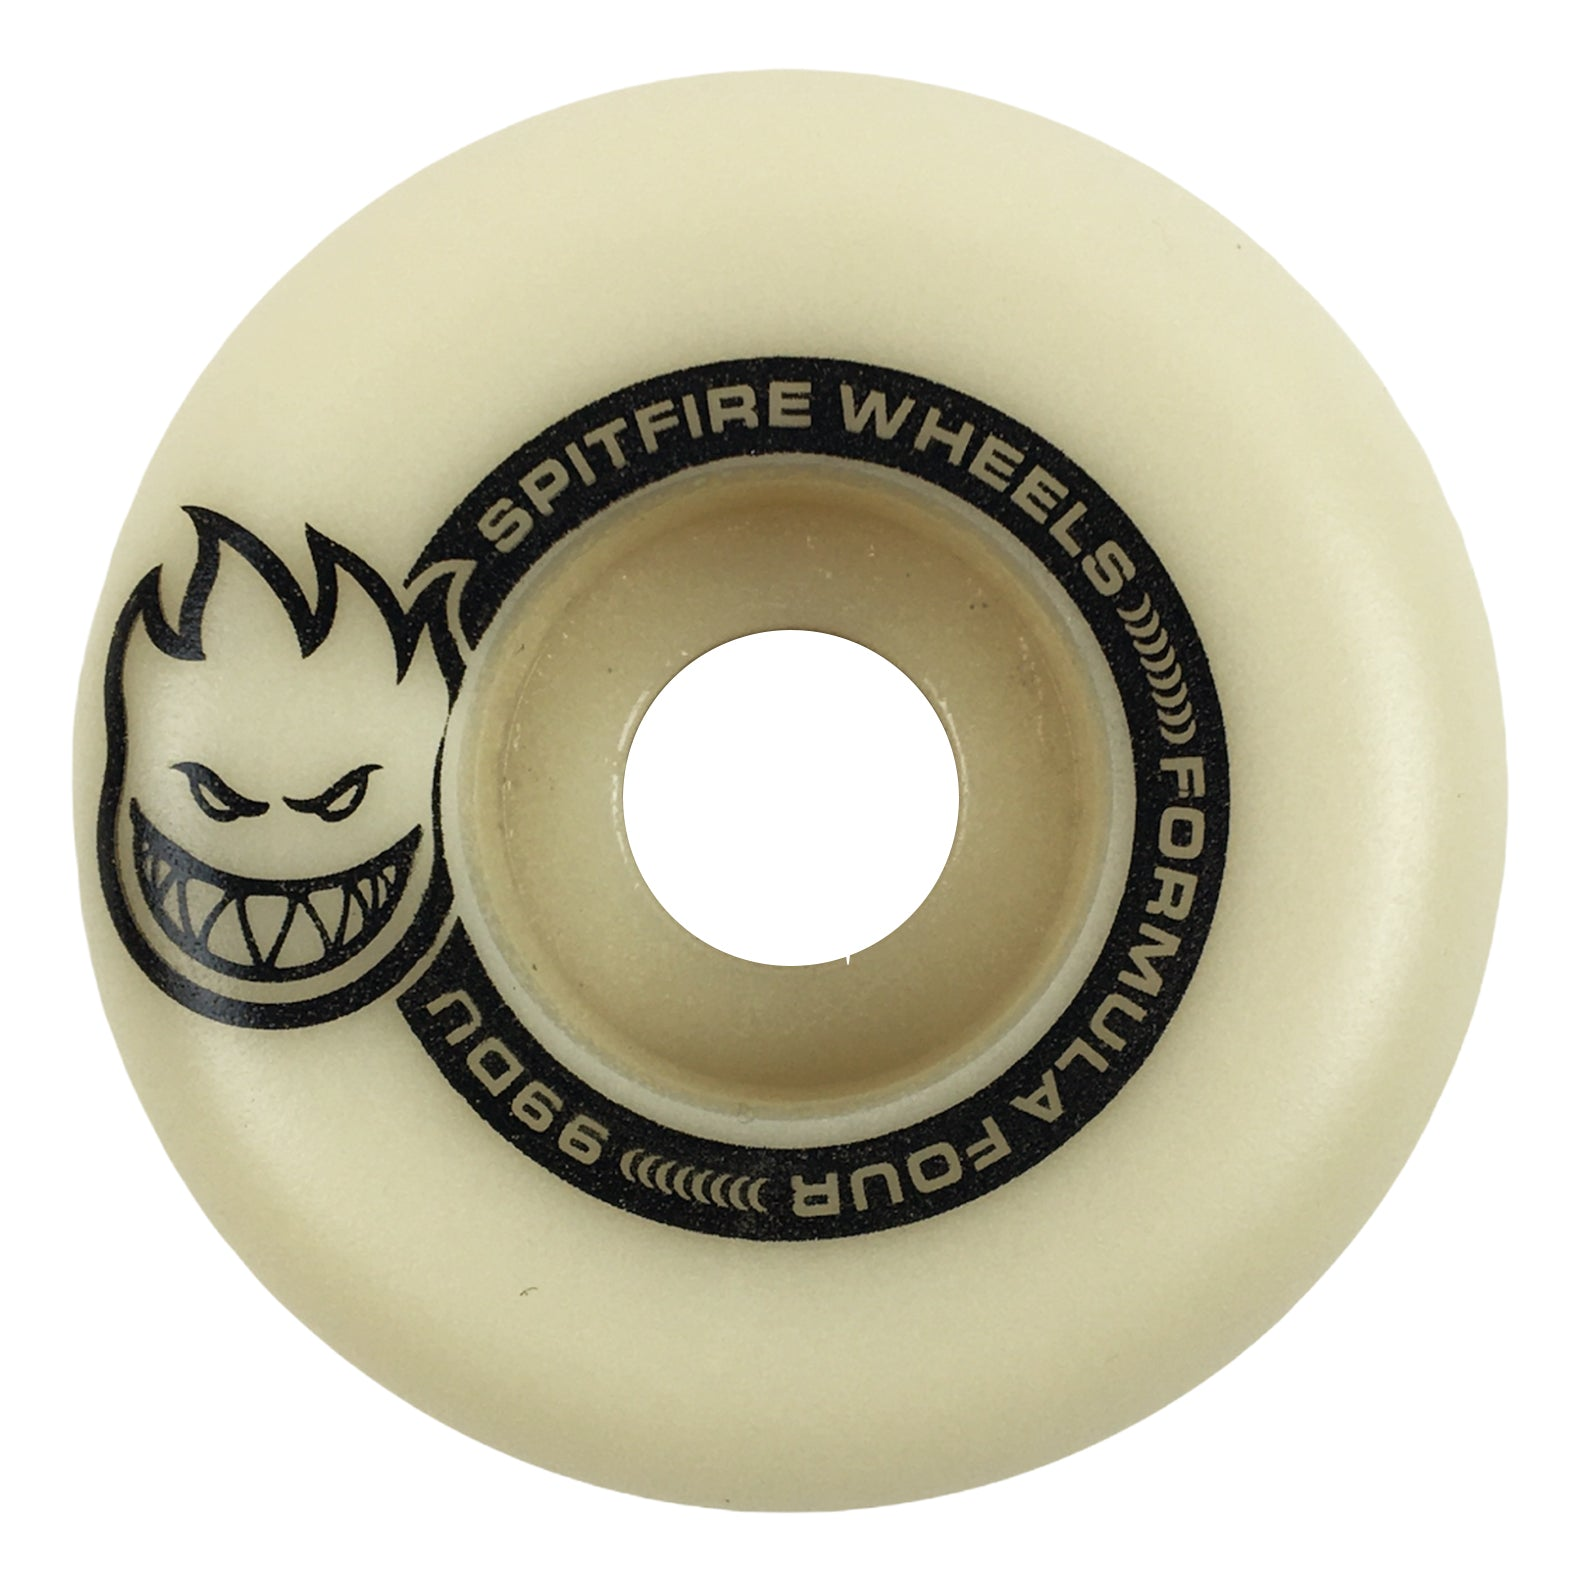 Spitfire Formula Four F4 Lil Smokies 99 Tablet 51mm